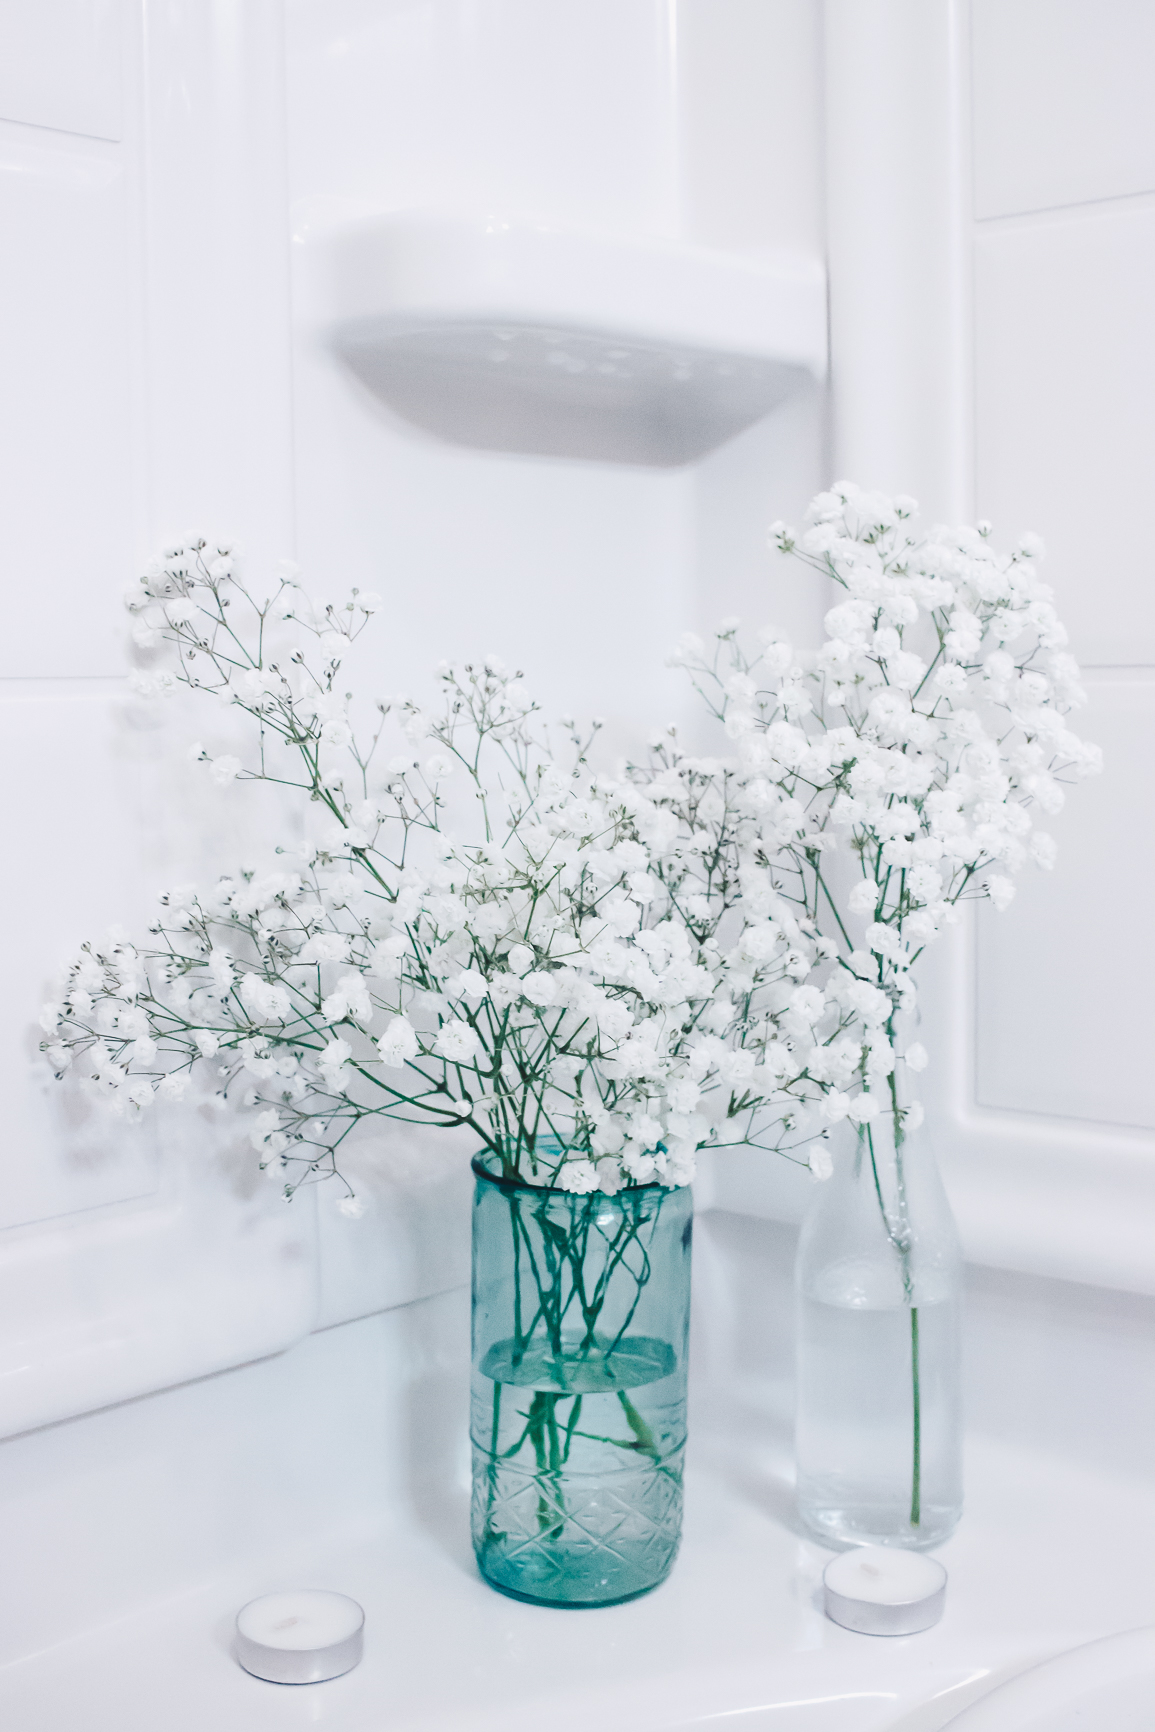 HelloLovelyLiving.com | Treat Yourself To The Perfect Winter Bath